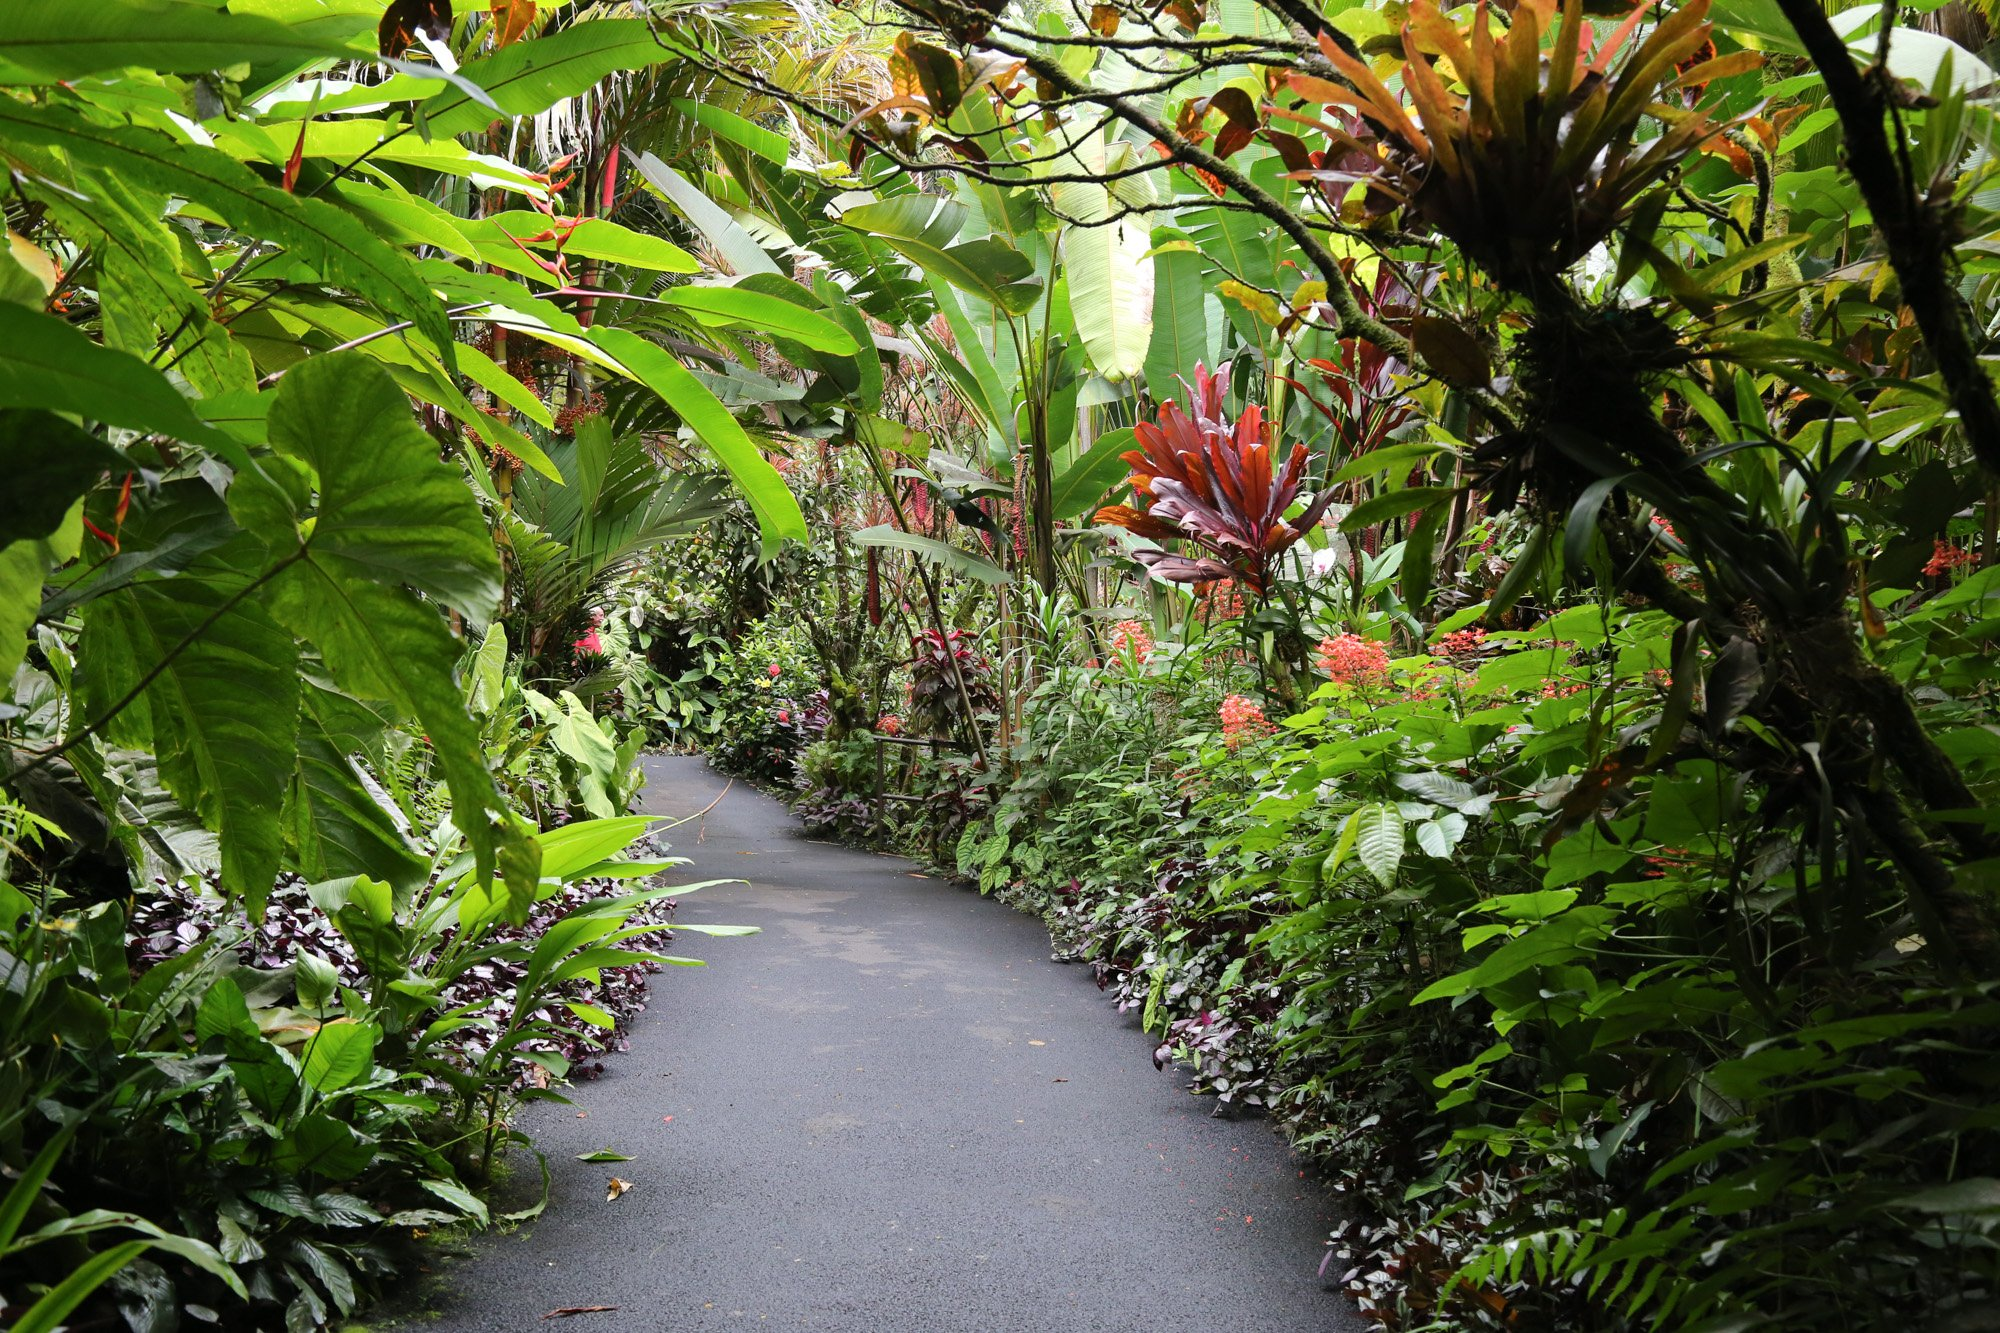 original_caughey-melissa-hawaii-garden-walkway_